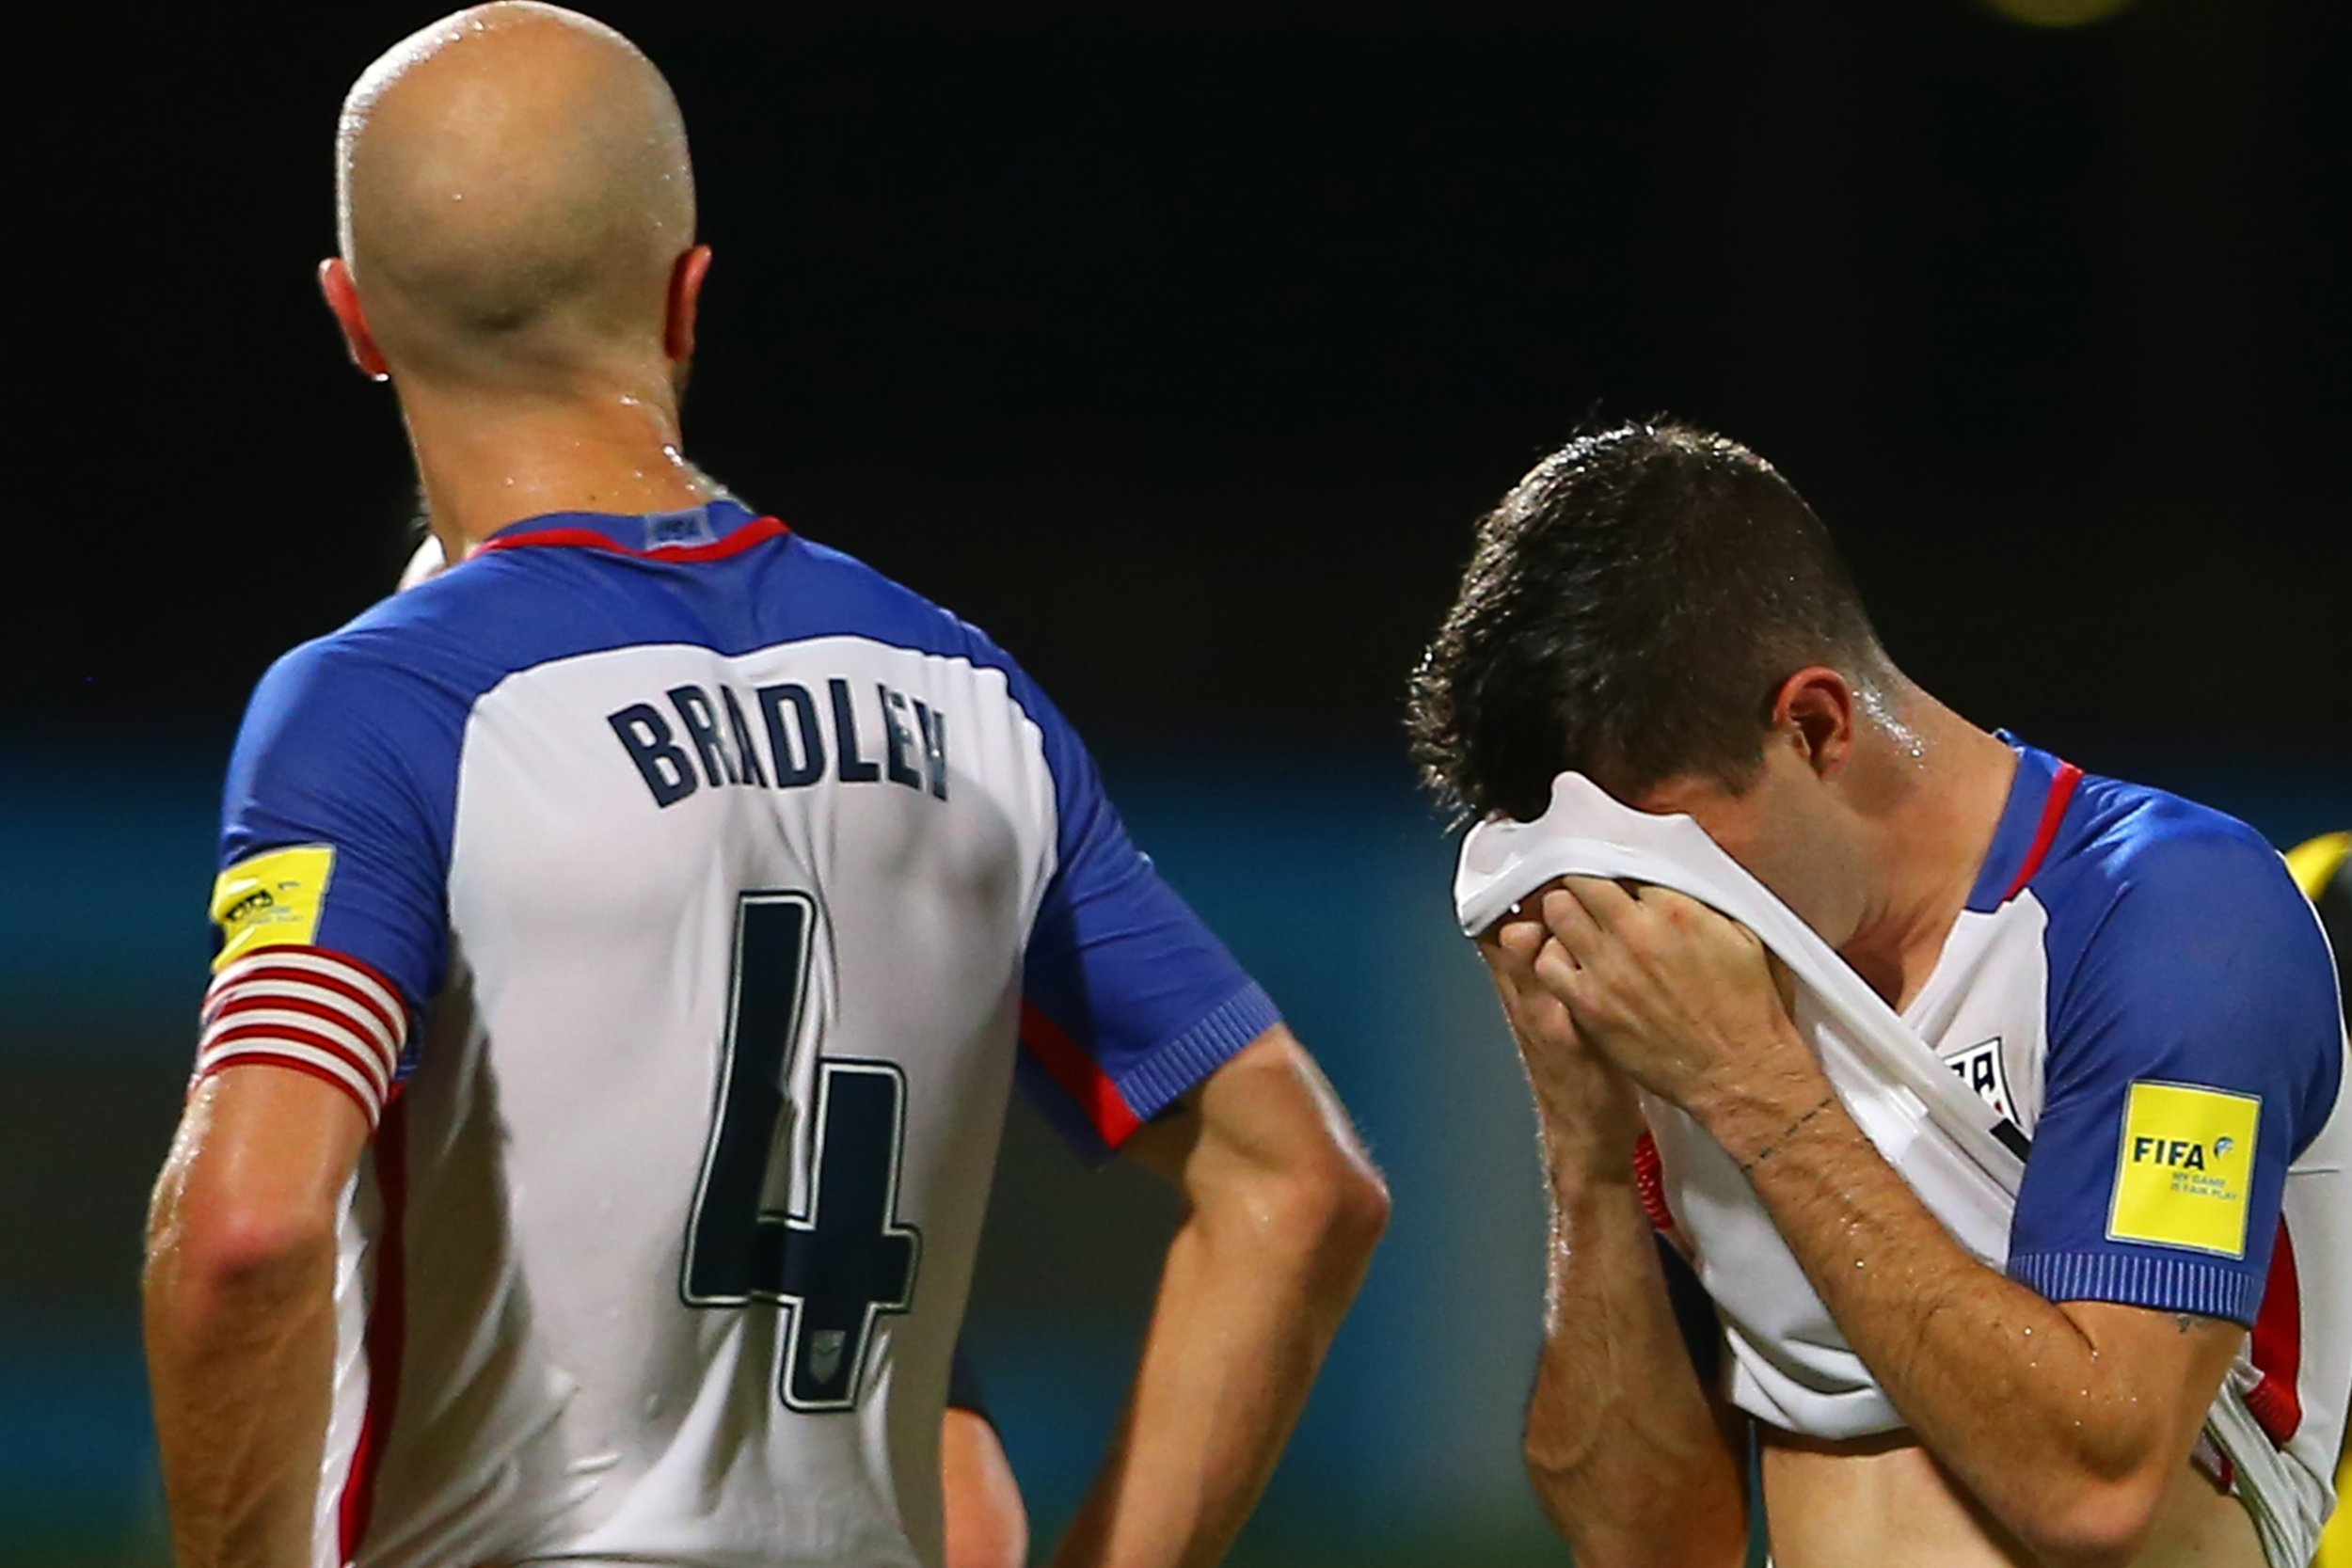 Michael Bradley, left, and Christian Pulisic at the Ato Boldon Stadium, Couva, Trinidad and Tobago, October 10.